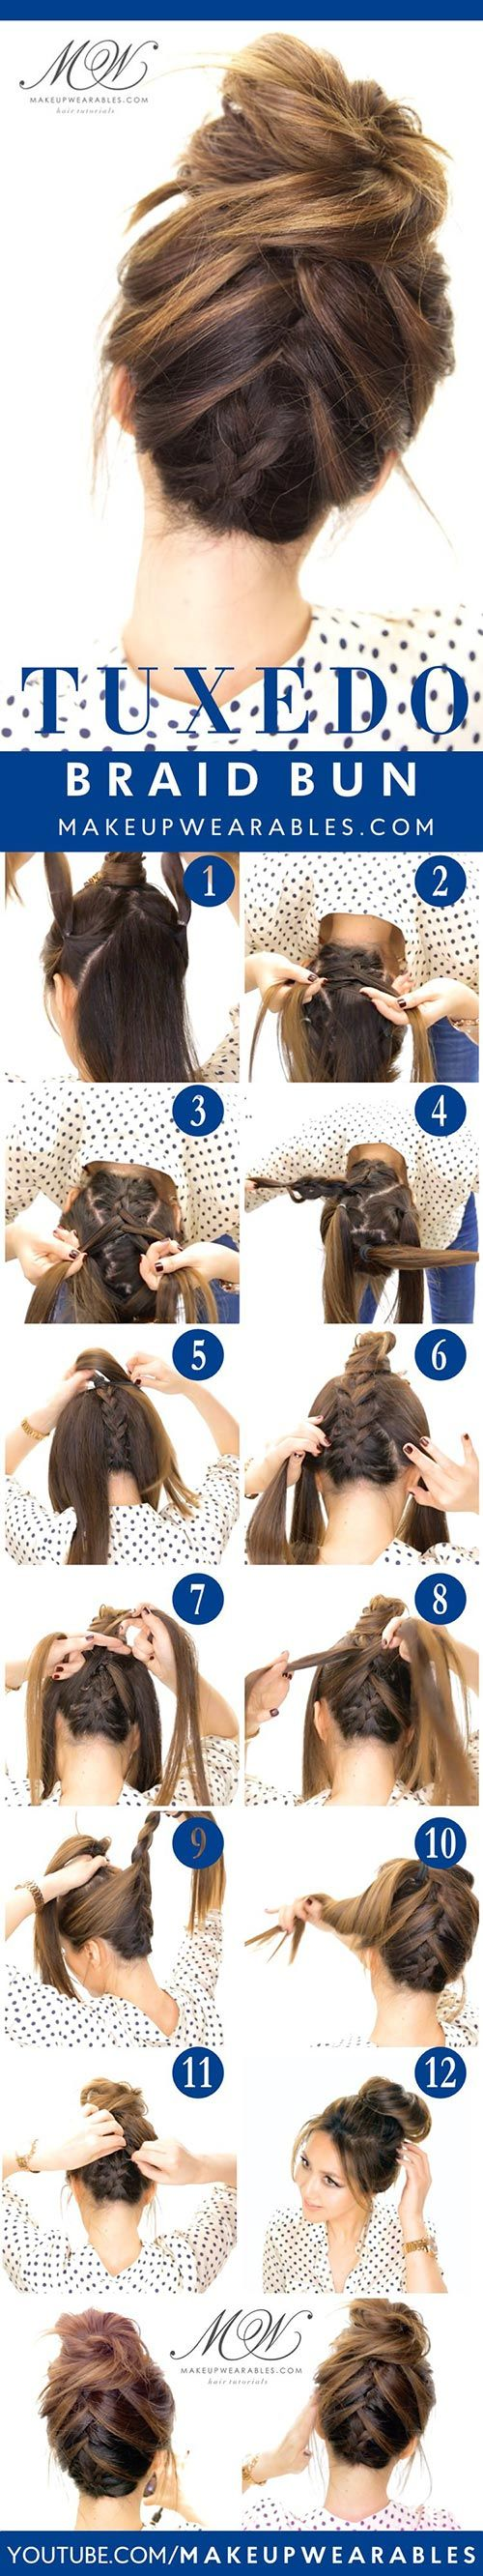 Best 25 holiday hairstyles ideas on pinterest videos of top 10 messy updo tutorials for different hair lengths messy bun hairstylesholiday pmusecretfo Images